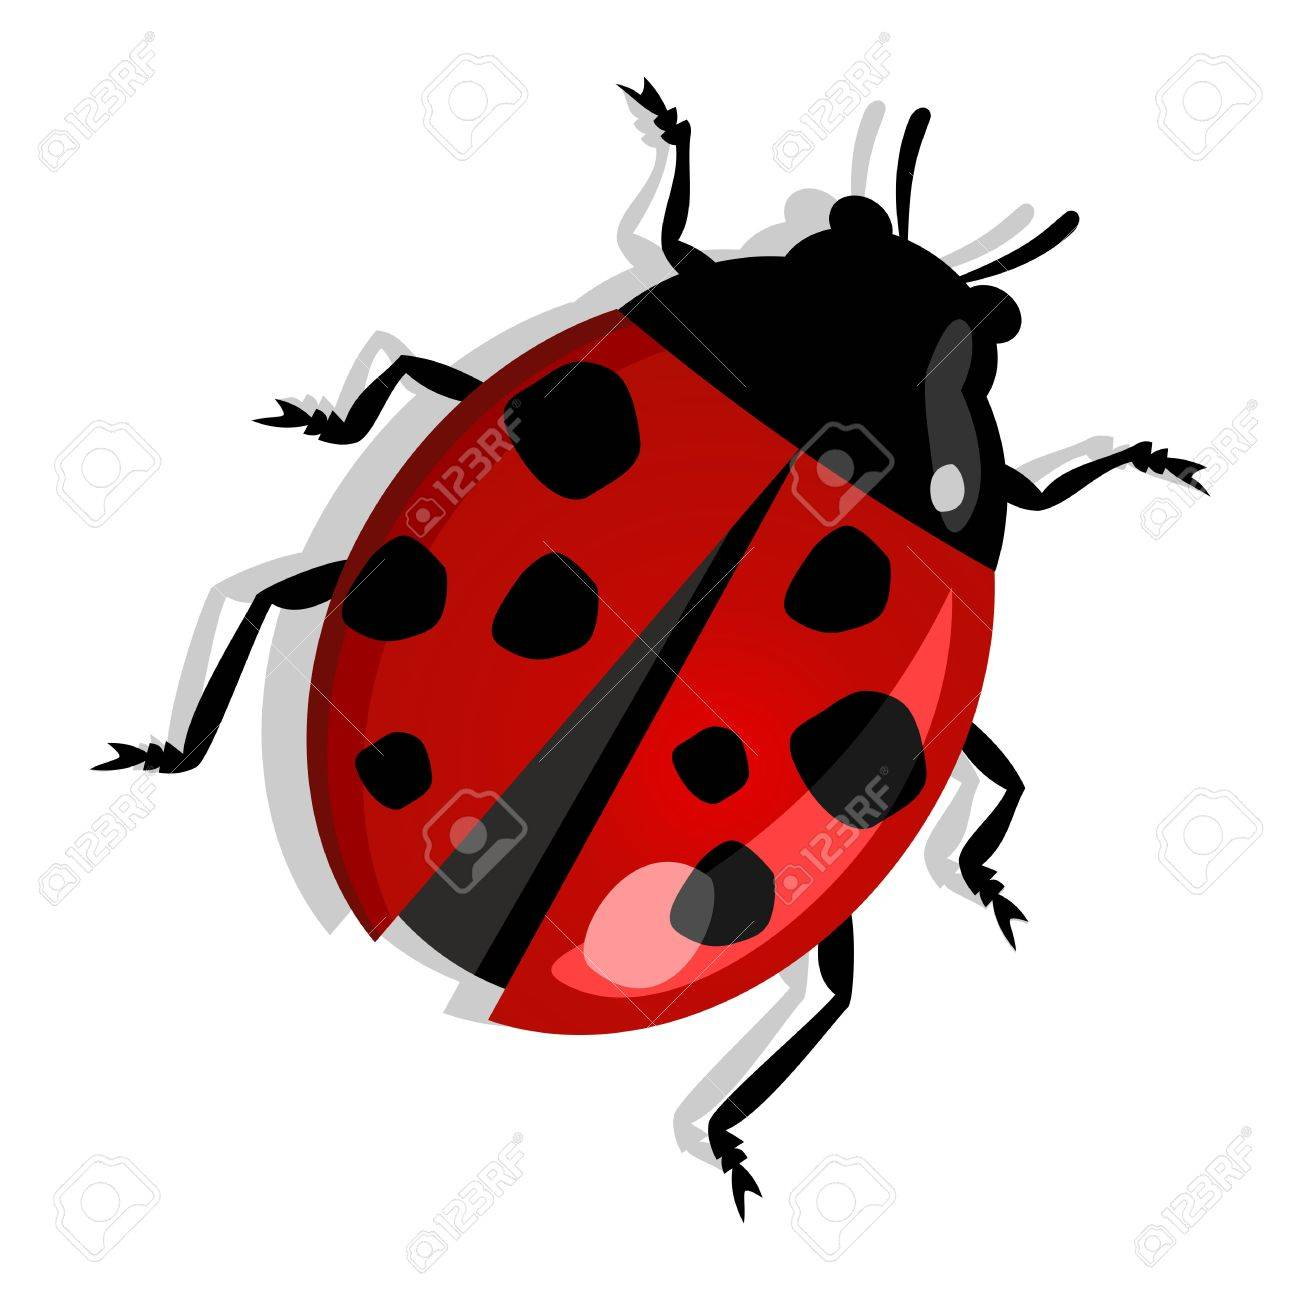 Red beetle isolated over white. Vector file layered for easy manipulation and custom coloring. Stock Vector - 17878223